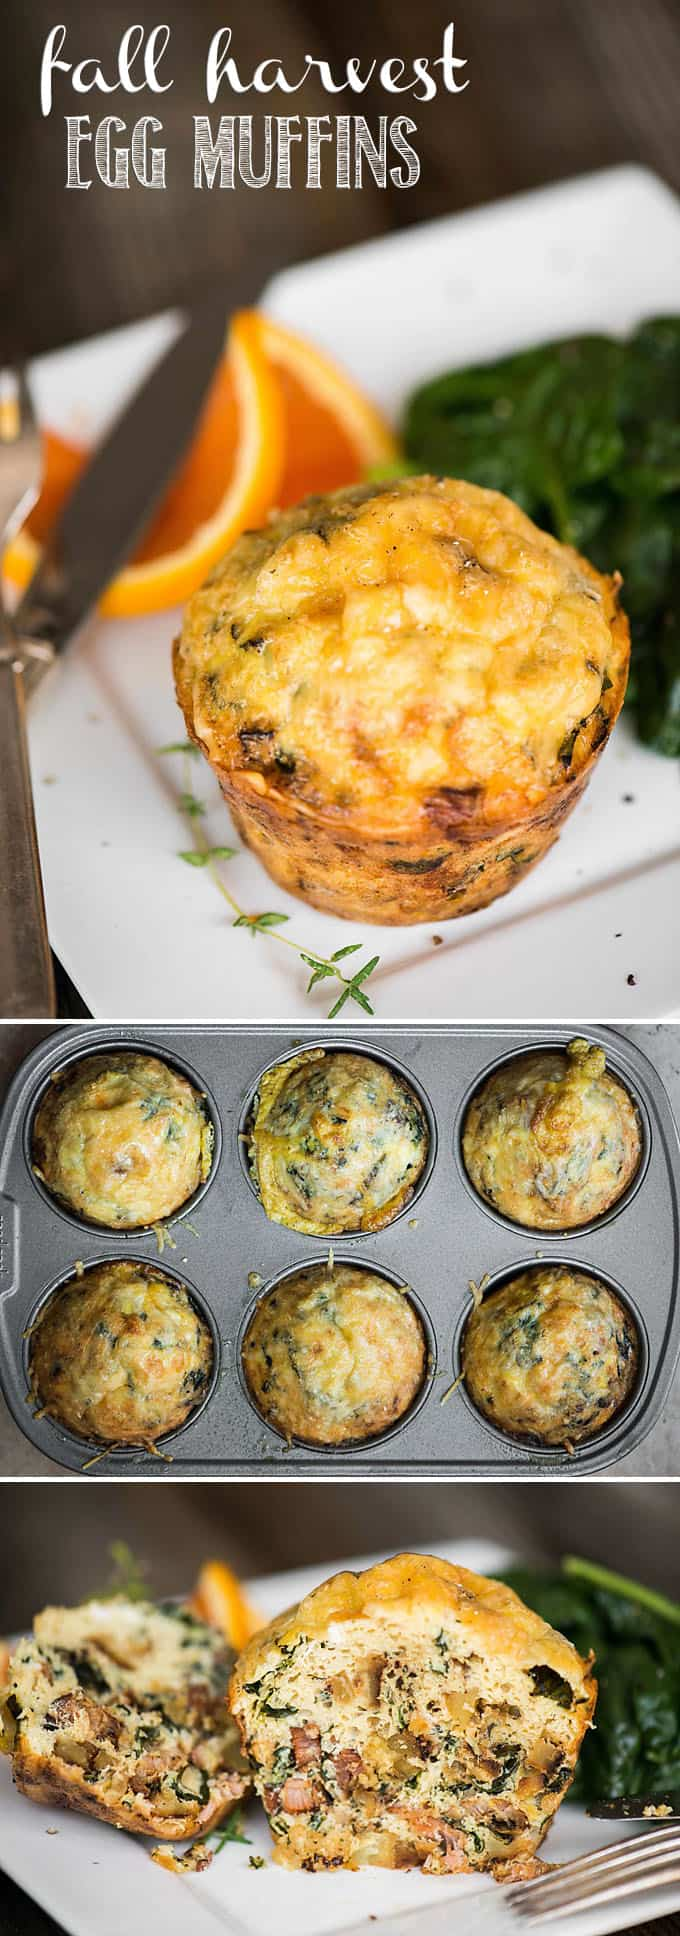 A close up of fall harvest egg muffins